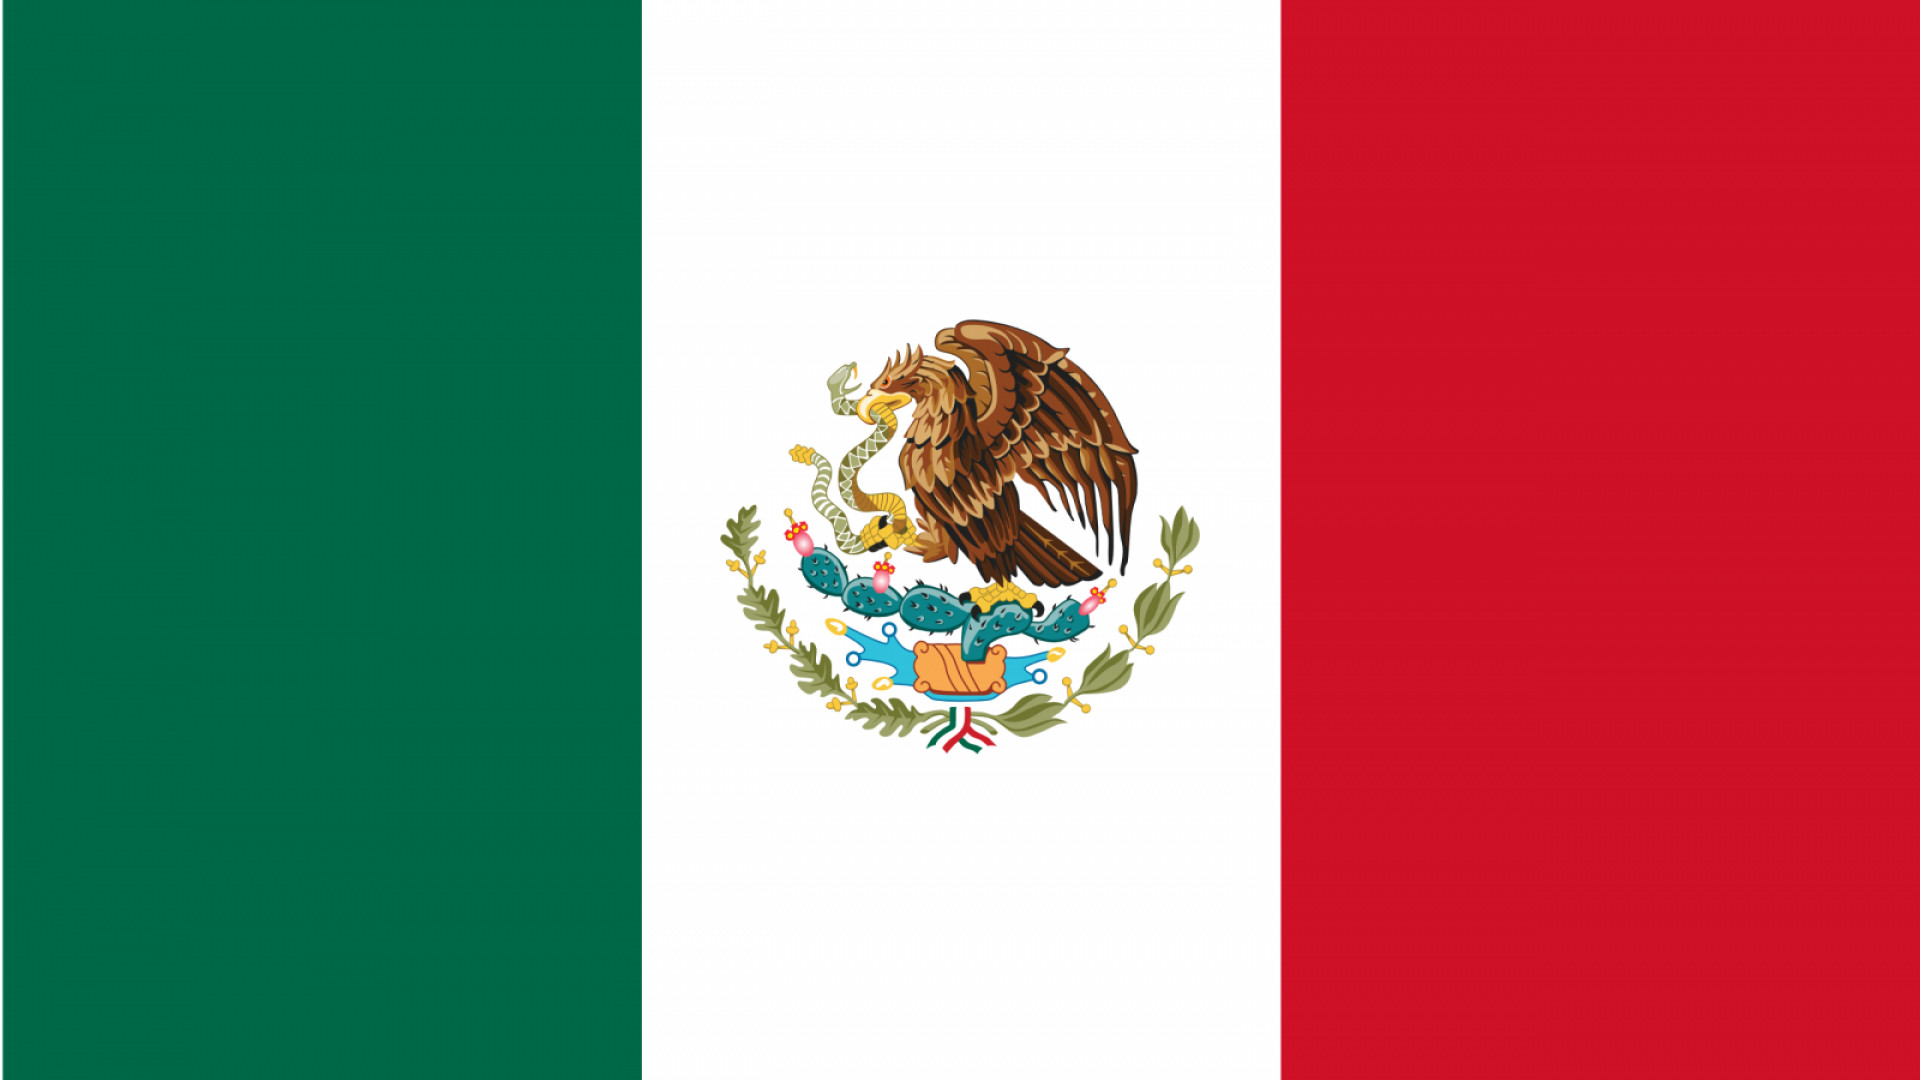 Mexico Flag Wallpaper   HD Wallpapers   Pinterest   Mexico flag and  Wallpaper